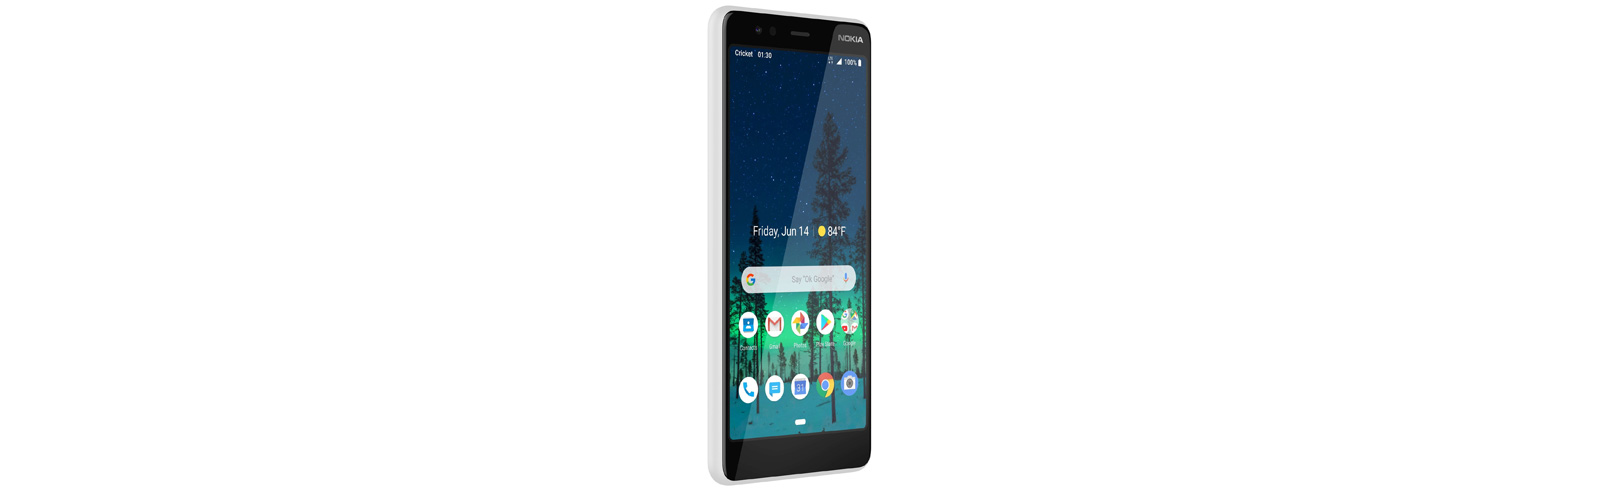 Nokia 3.1 A and Nokia 3.1 C available on AT&T Prepaid and Cricket Wireless